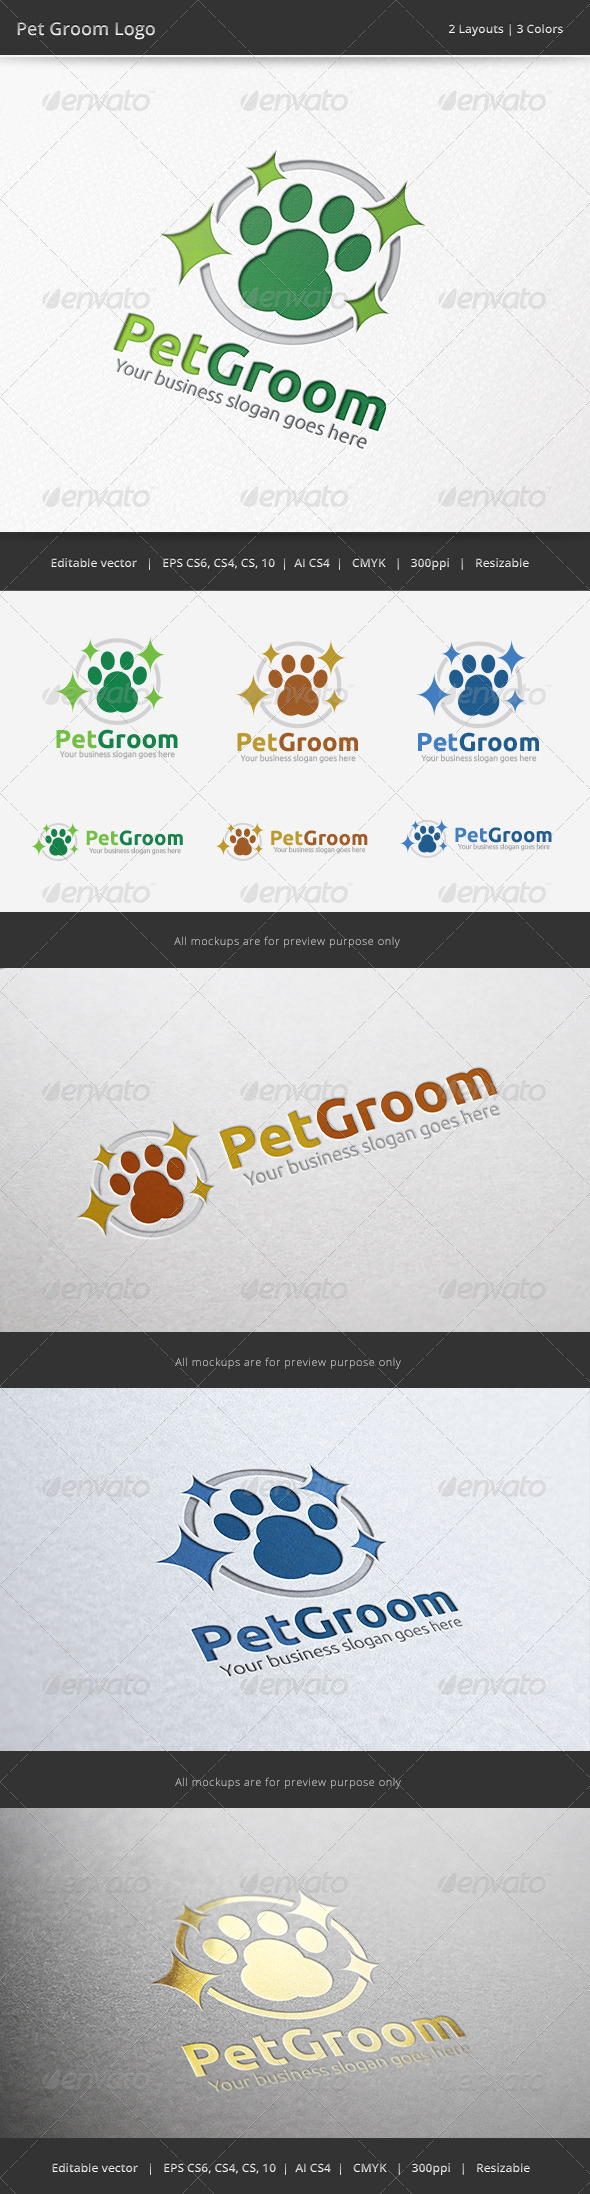 Pet Groom Logo - Animals Logo Templates